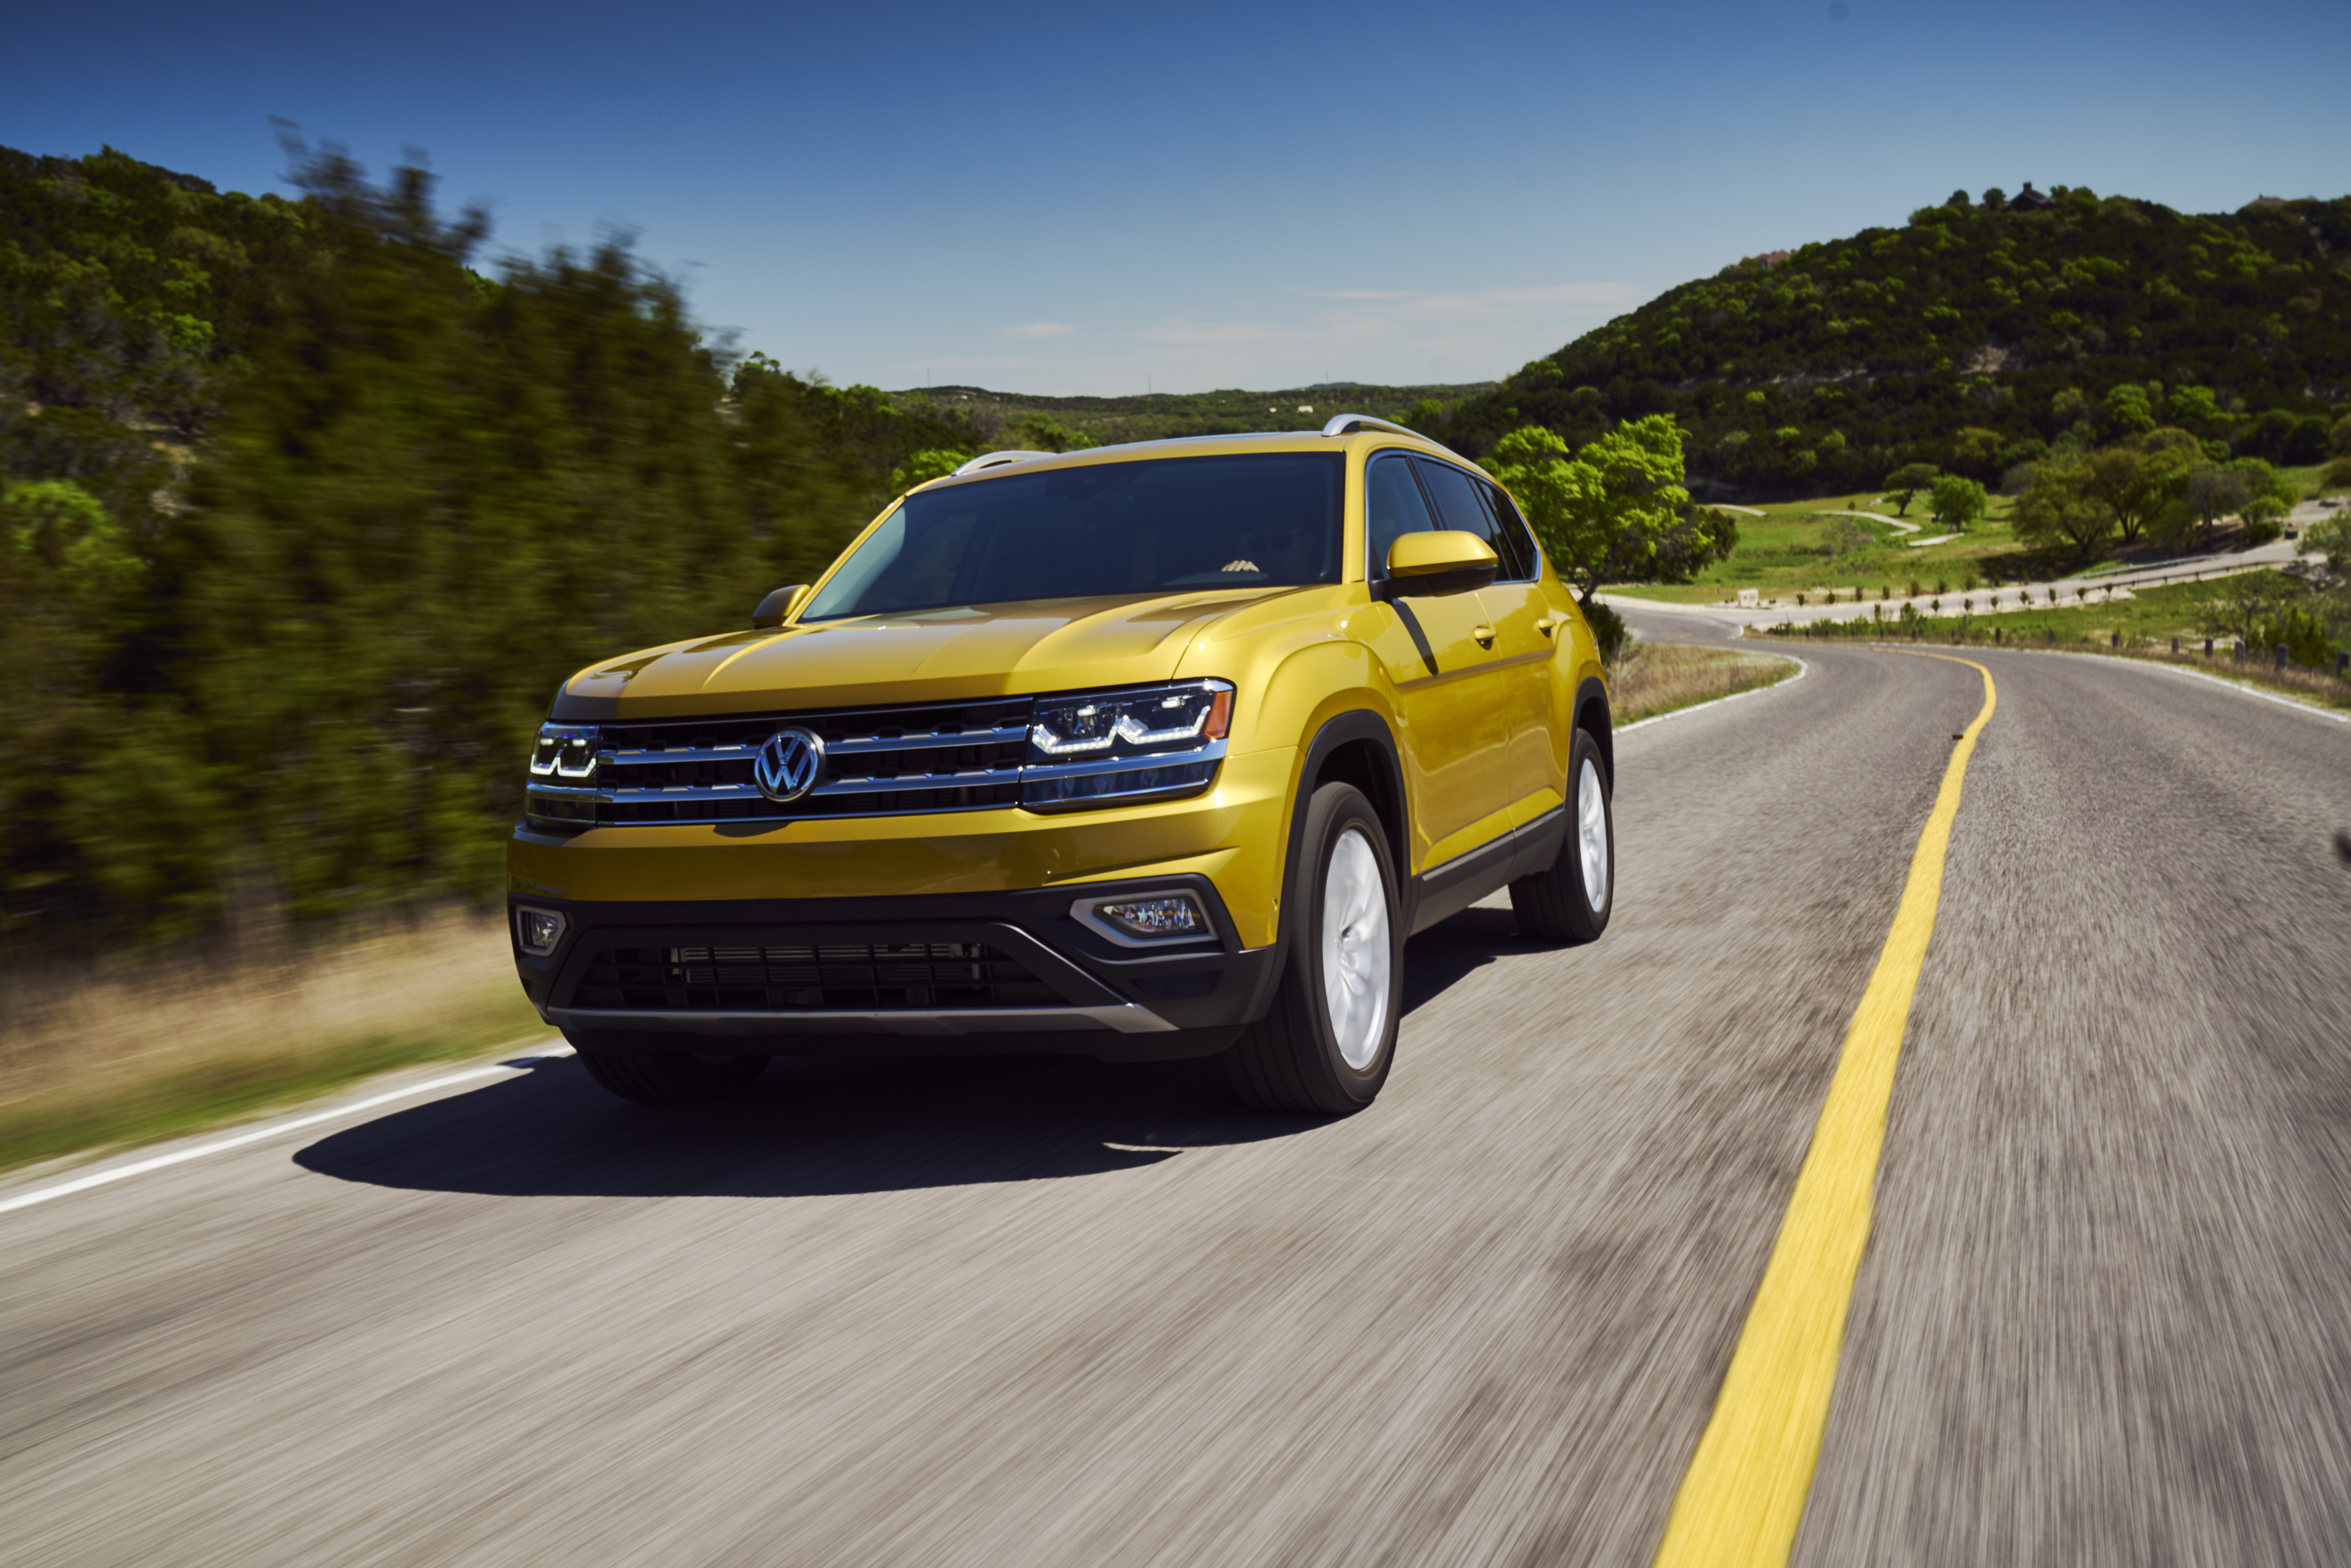 2018 Volkswagen Atlas near Branford, CT